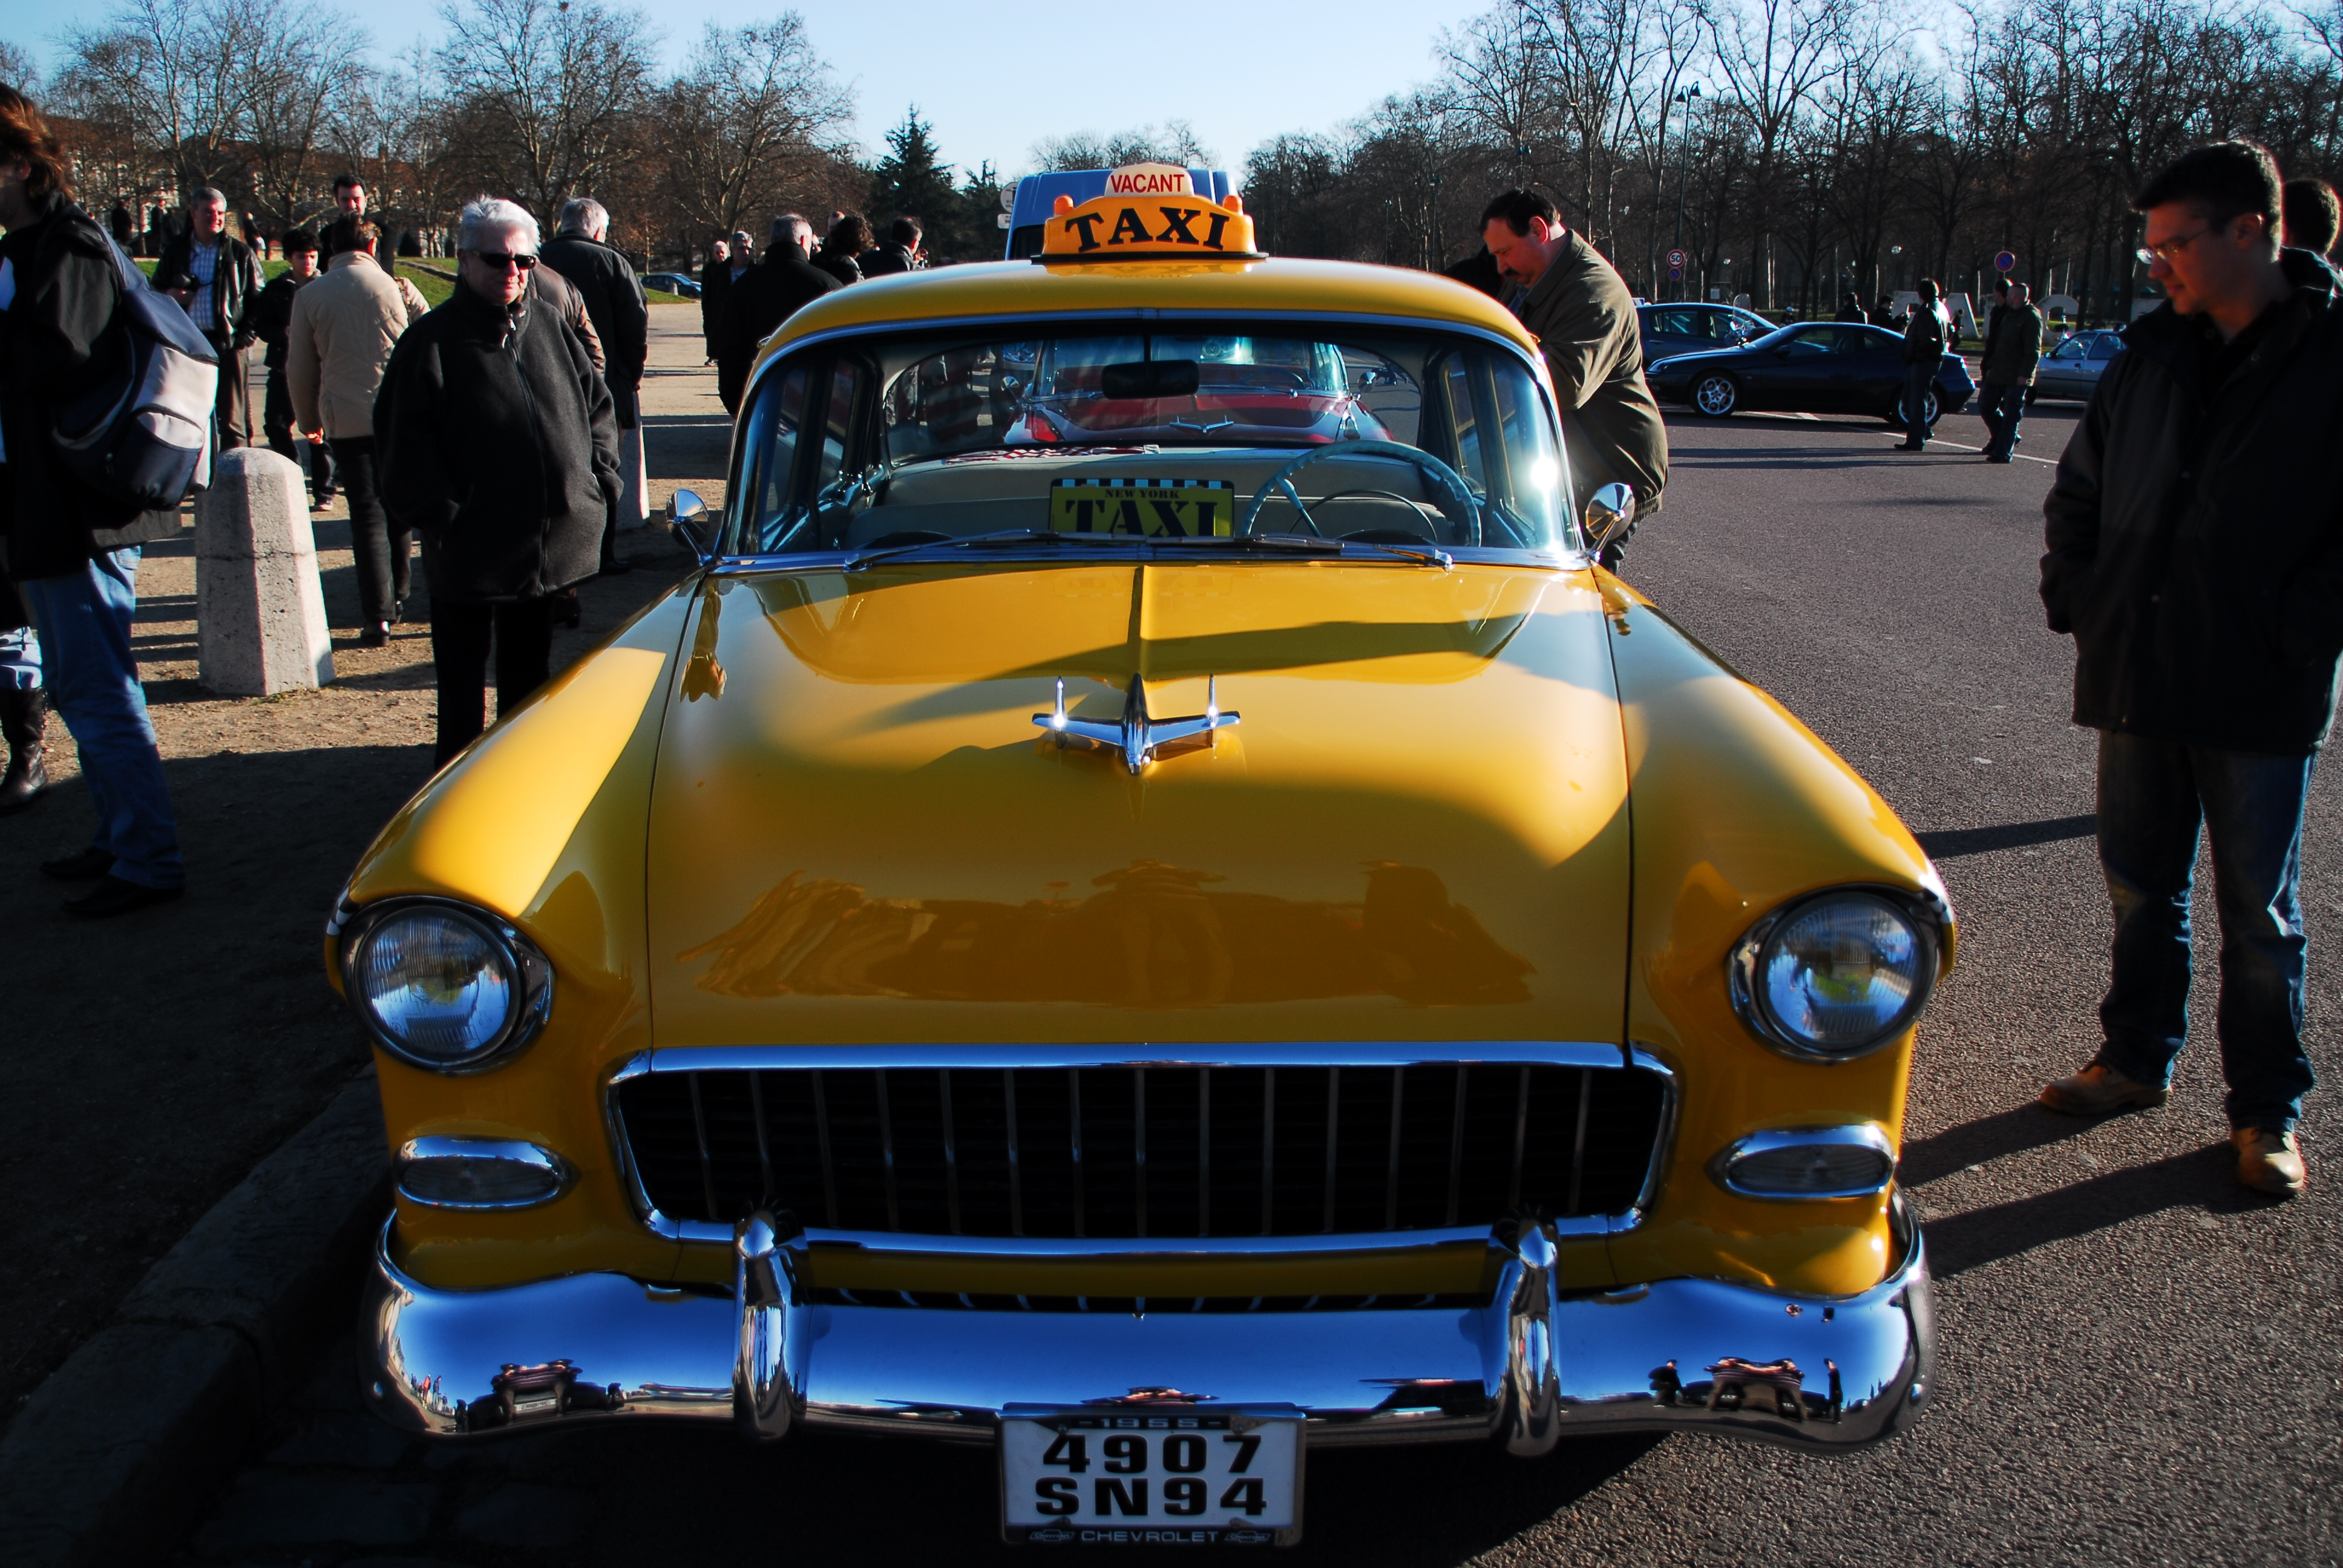 1955 chevrolet 210 TAXI | Flickr - Photo Sharing!